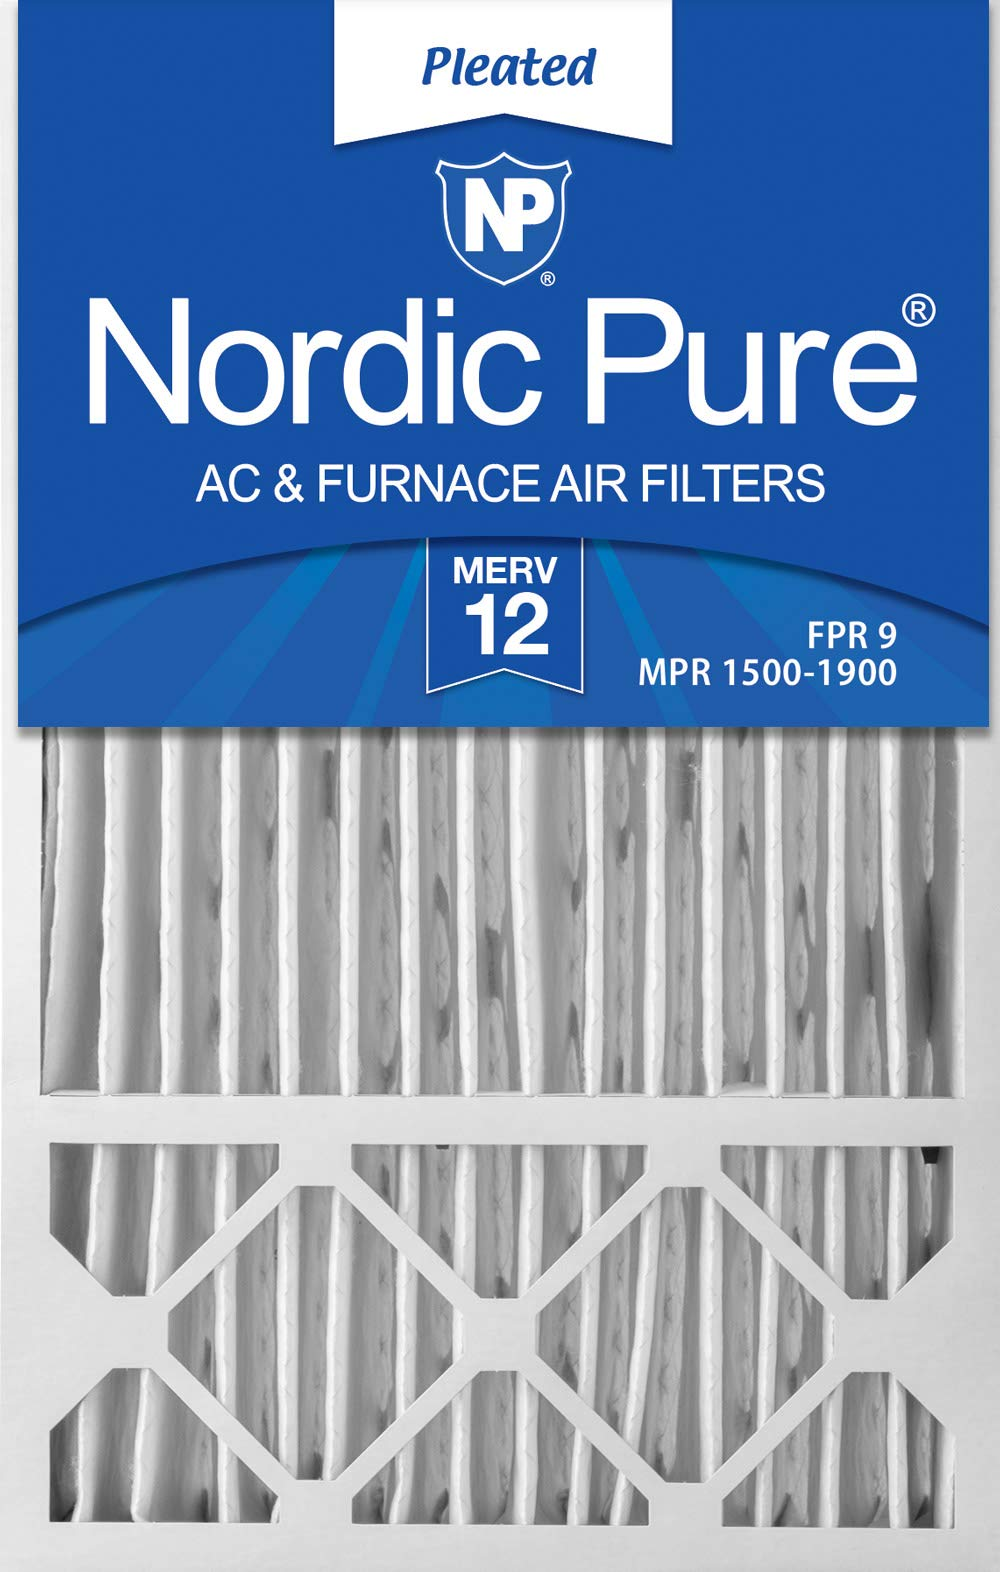 Nordic Pure 16x25x4/16x25x5 (15 3/4 x 24 3/4 x 4 3/8) Honeywell FC100A1029 Replacement Pleated AC Furnace Air Filters MERV 12, Box of 2 by Nordic Pure